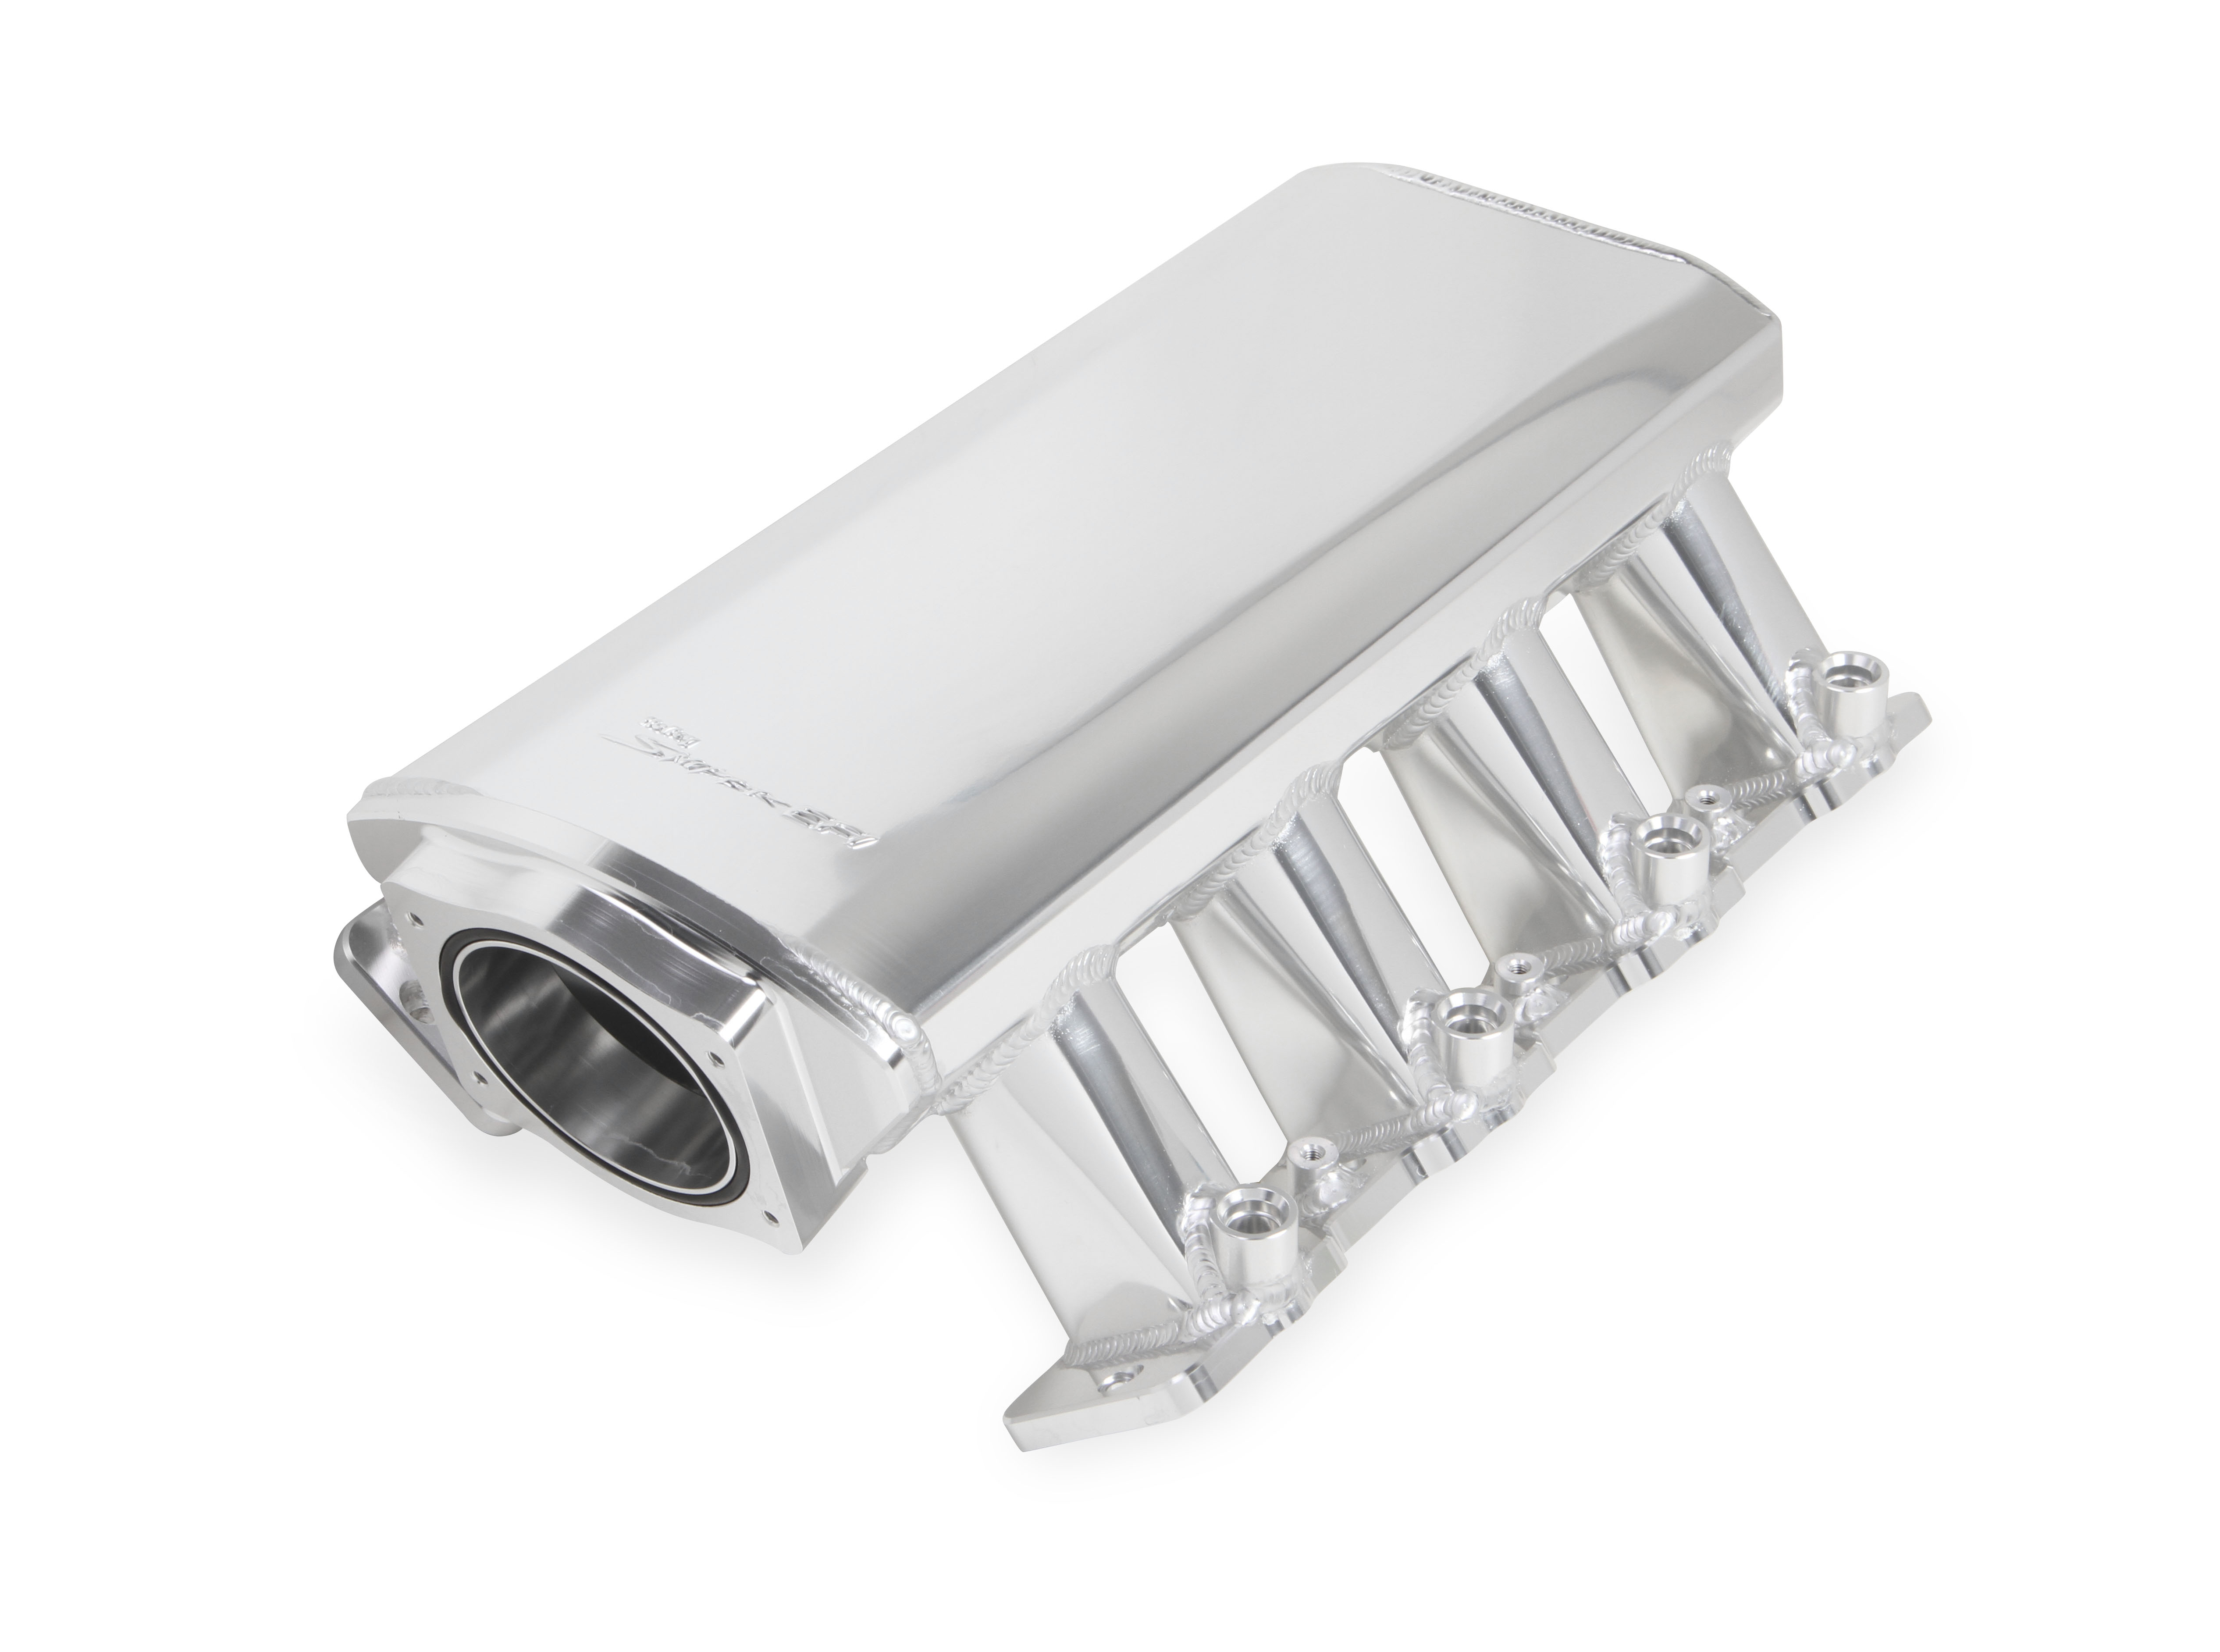 LS7 Holley Sniper EFI Fabricated Intake - 92mm TB w/Fuel Rail Kit in Silver Finish